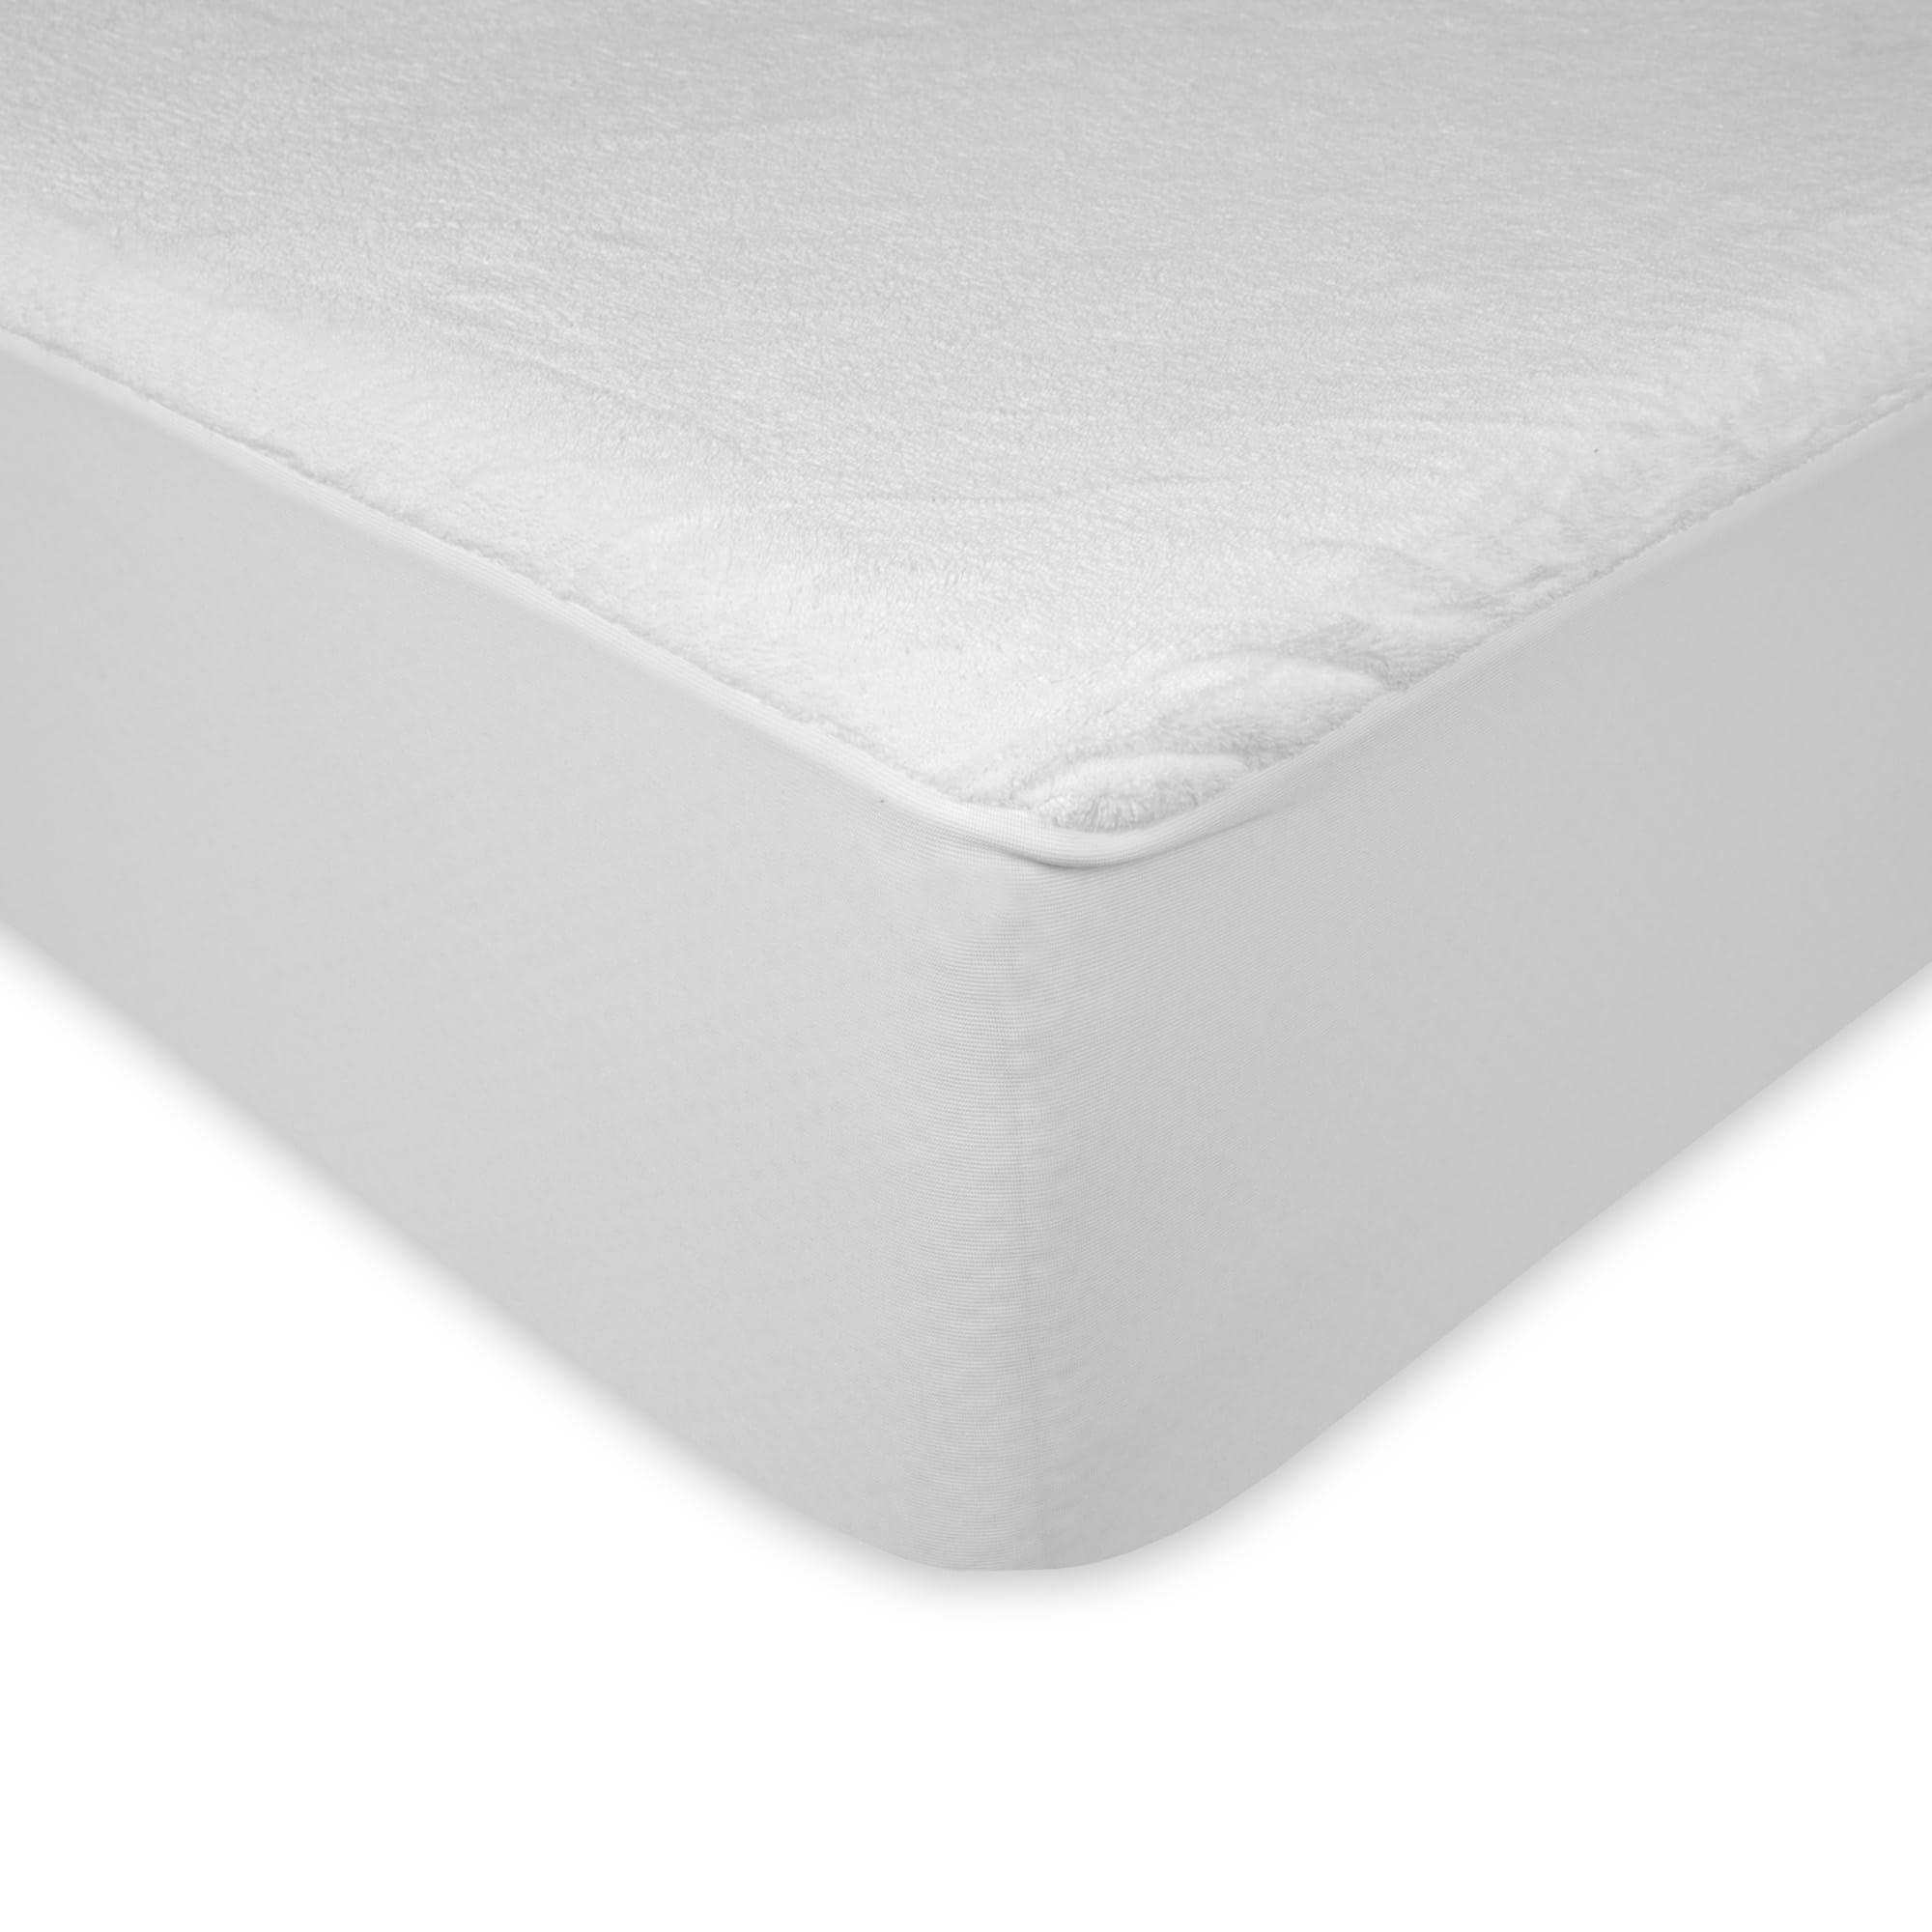 tempur advanced full queen reviews kohls replacement covers pad best of easyrefresh size protector by cooling performance waterproof pedic tempurpedic mattress cover king mattresses